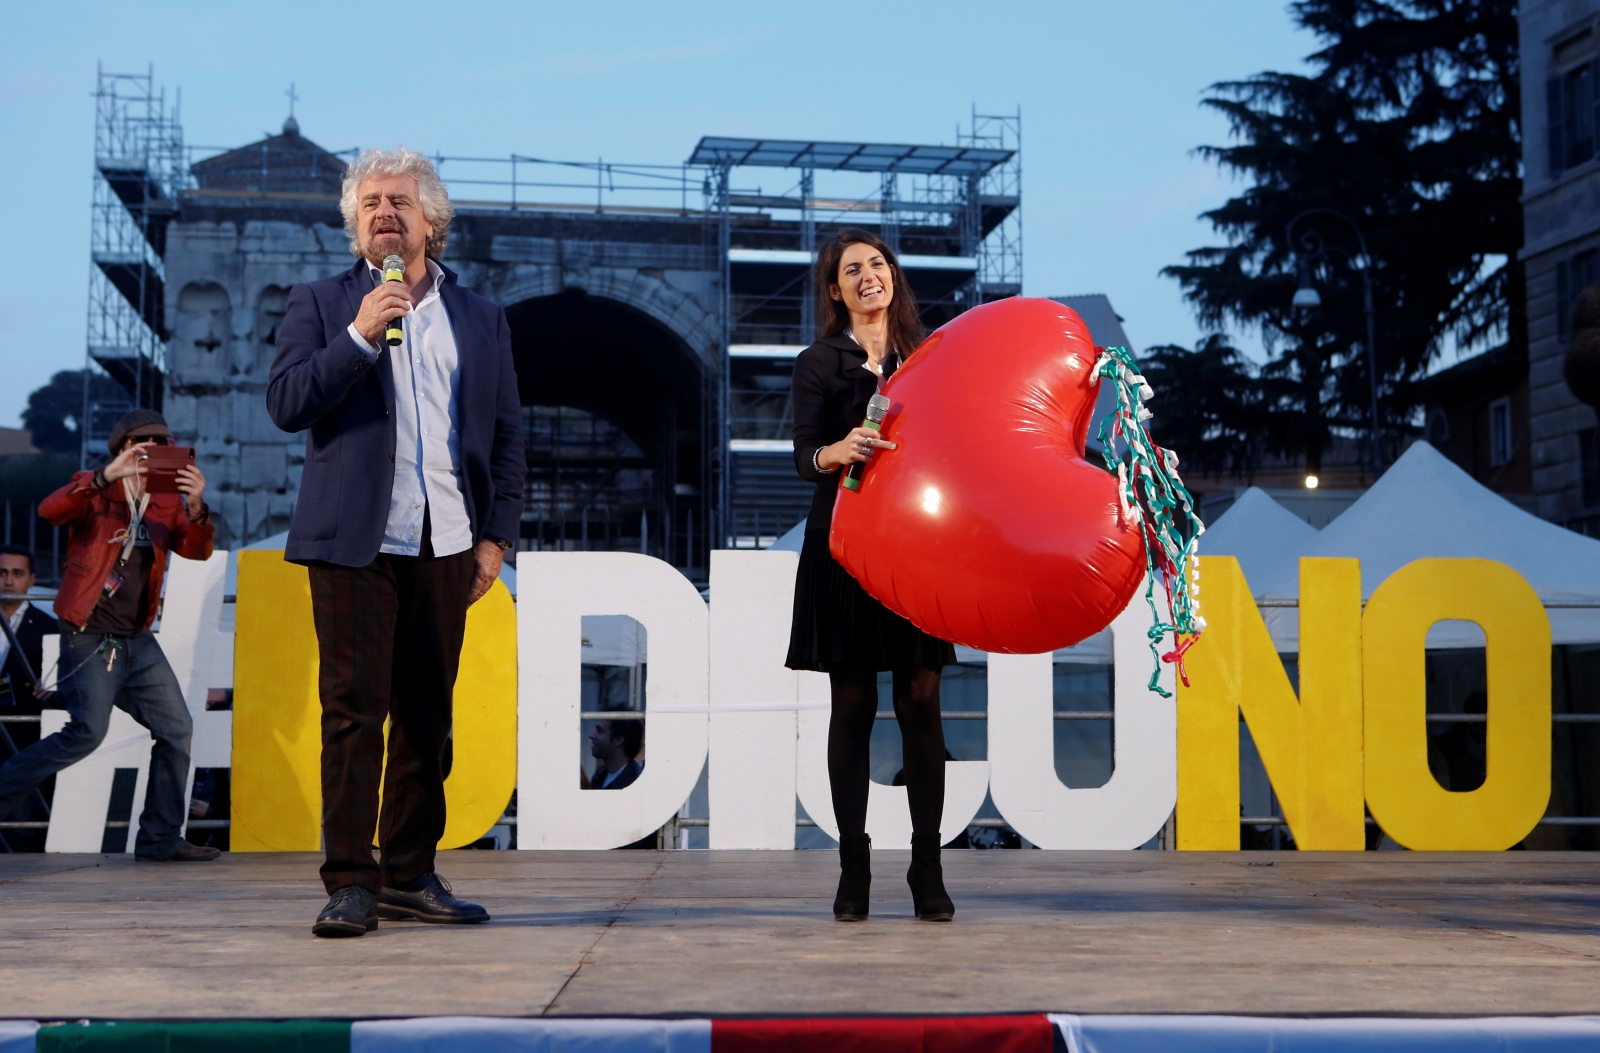 Beppe Grillo campaigns for No vote